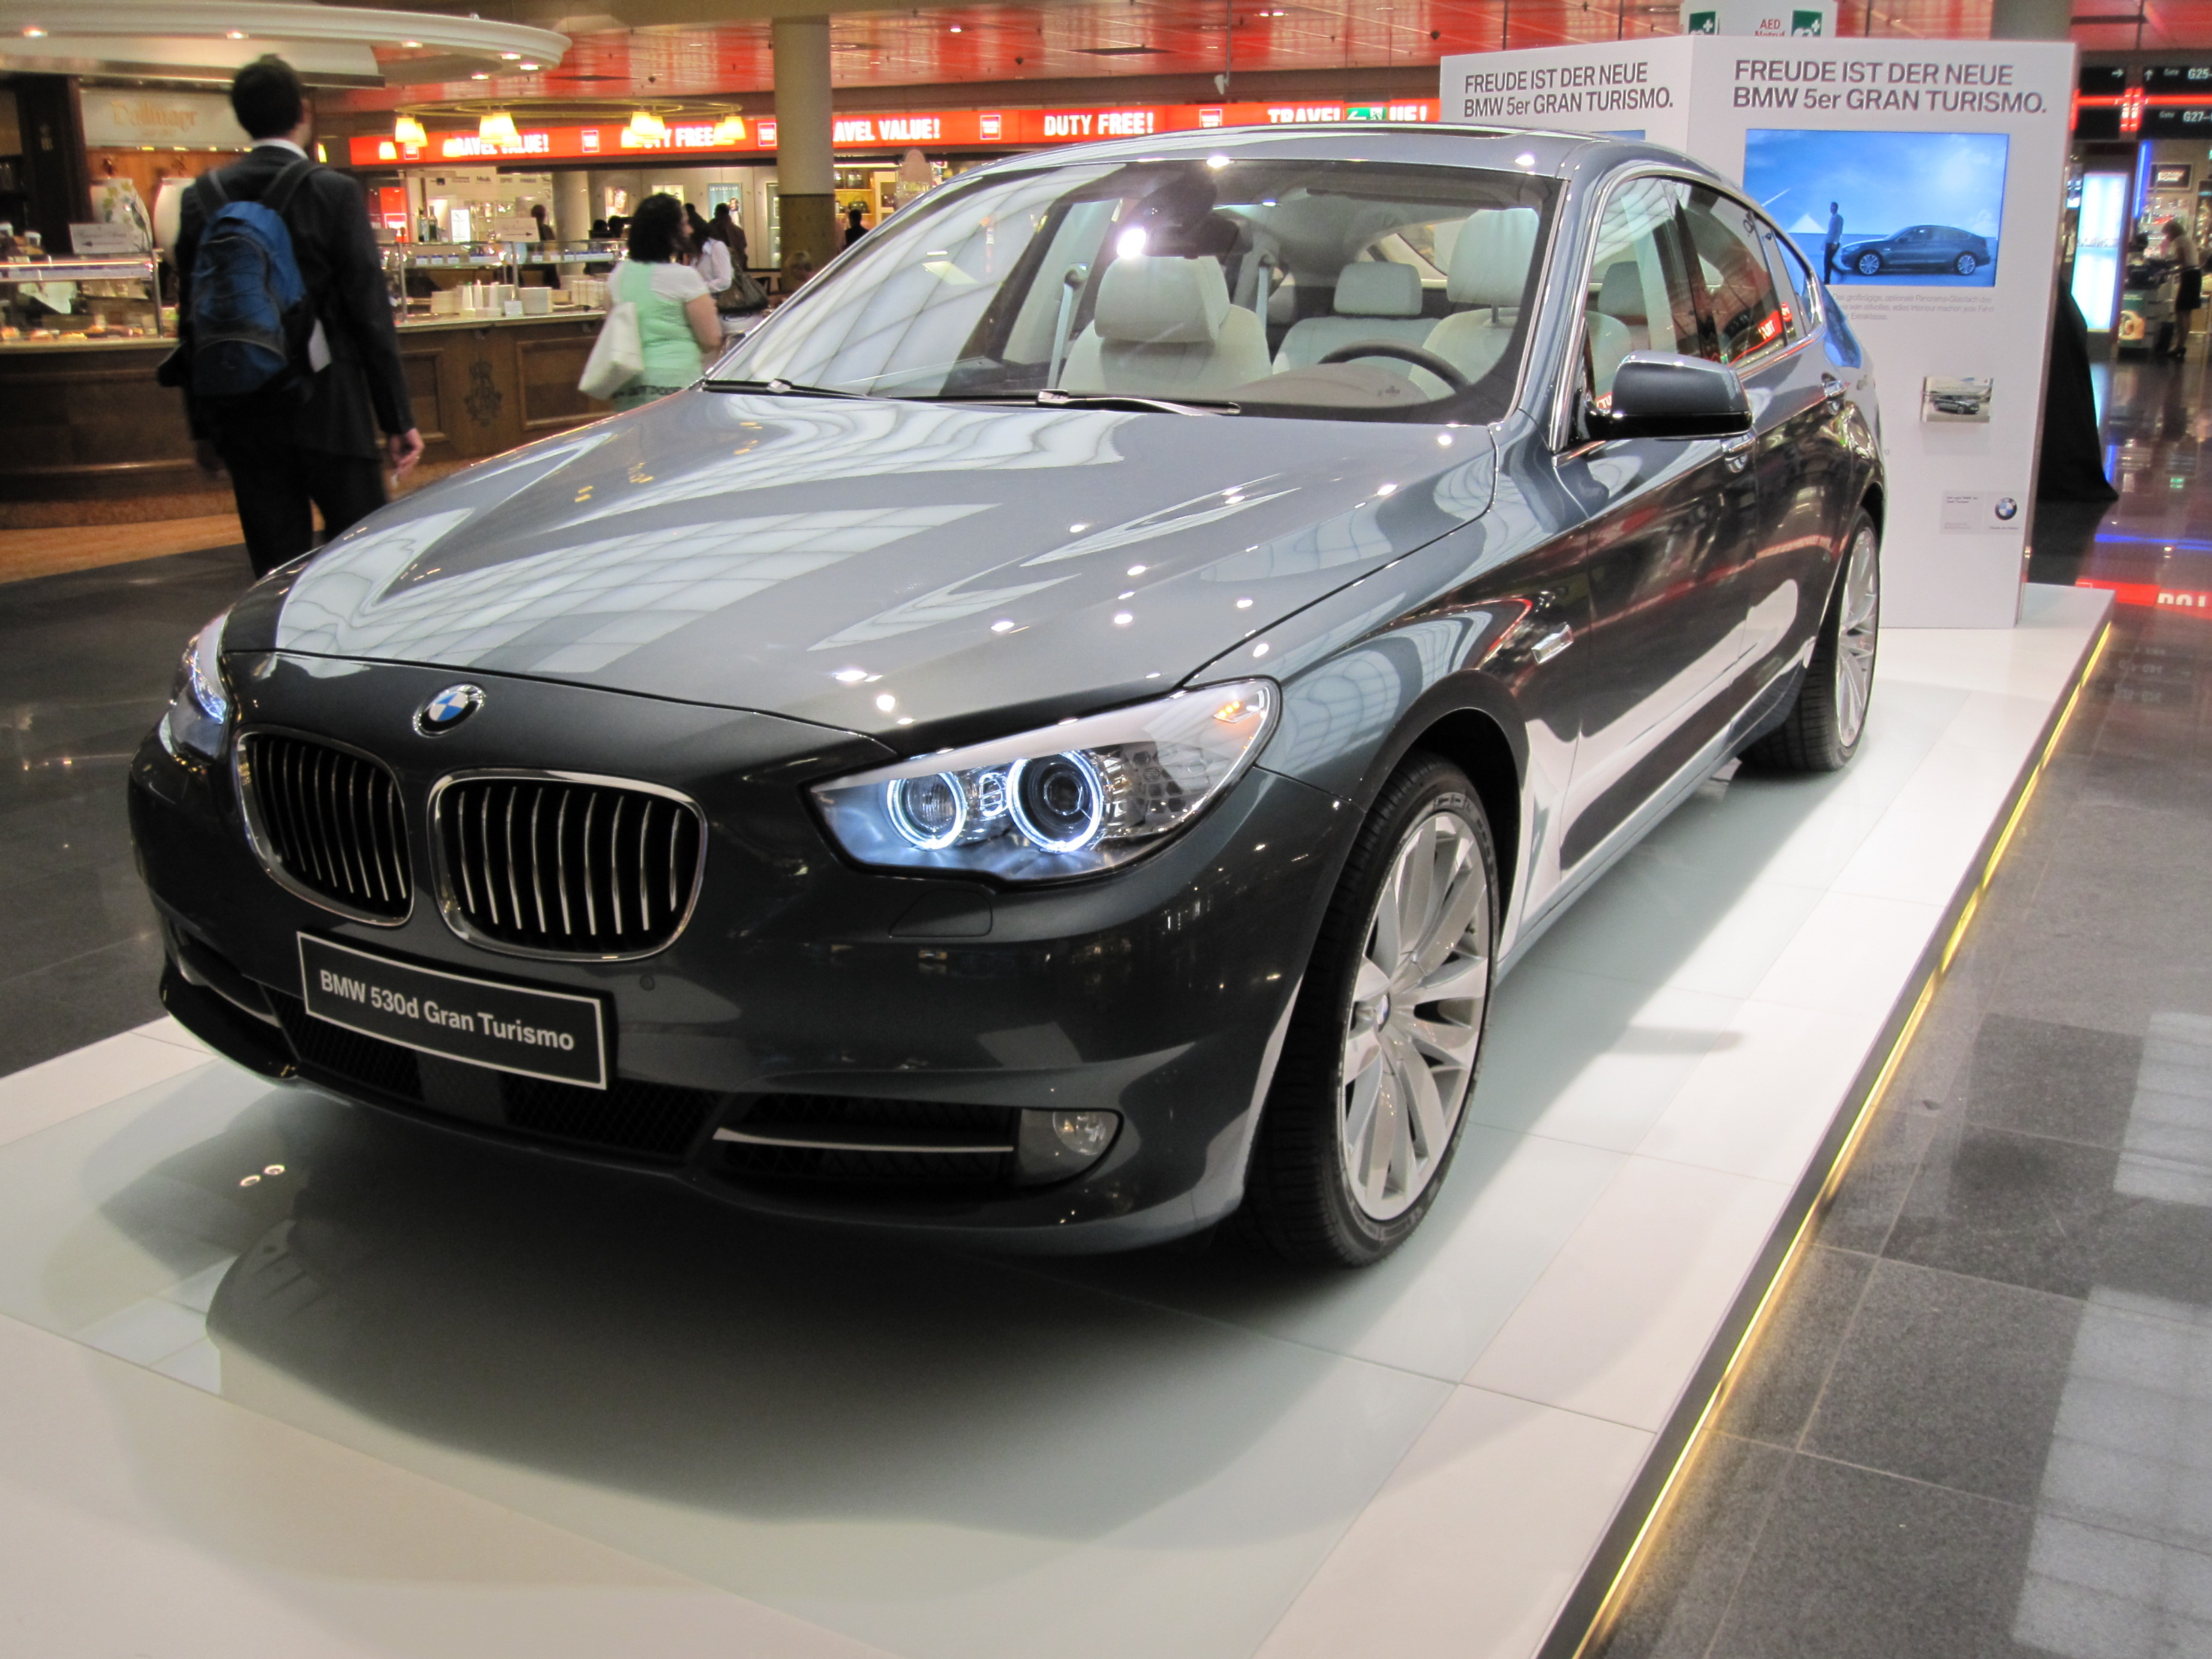 BMW 530d GT. We will have our 5 GT preview article tomorrow and we'll tell